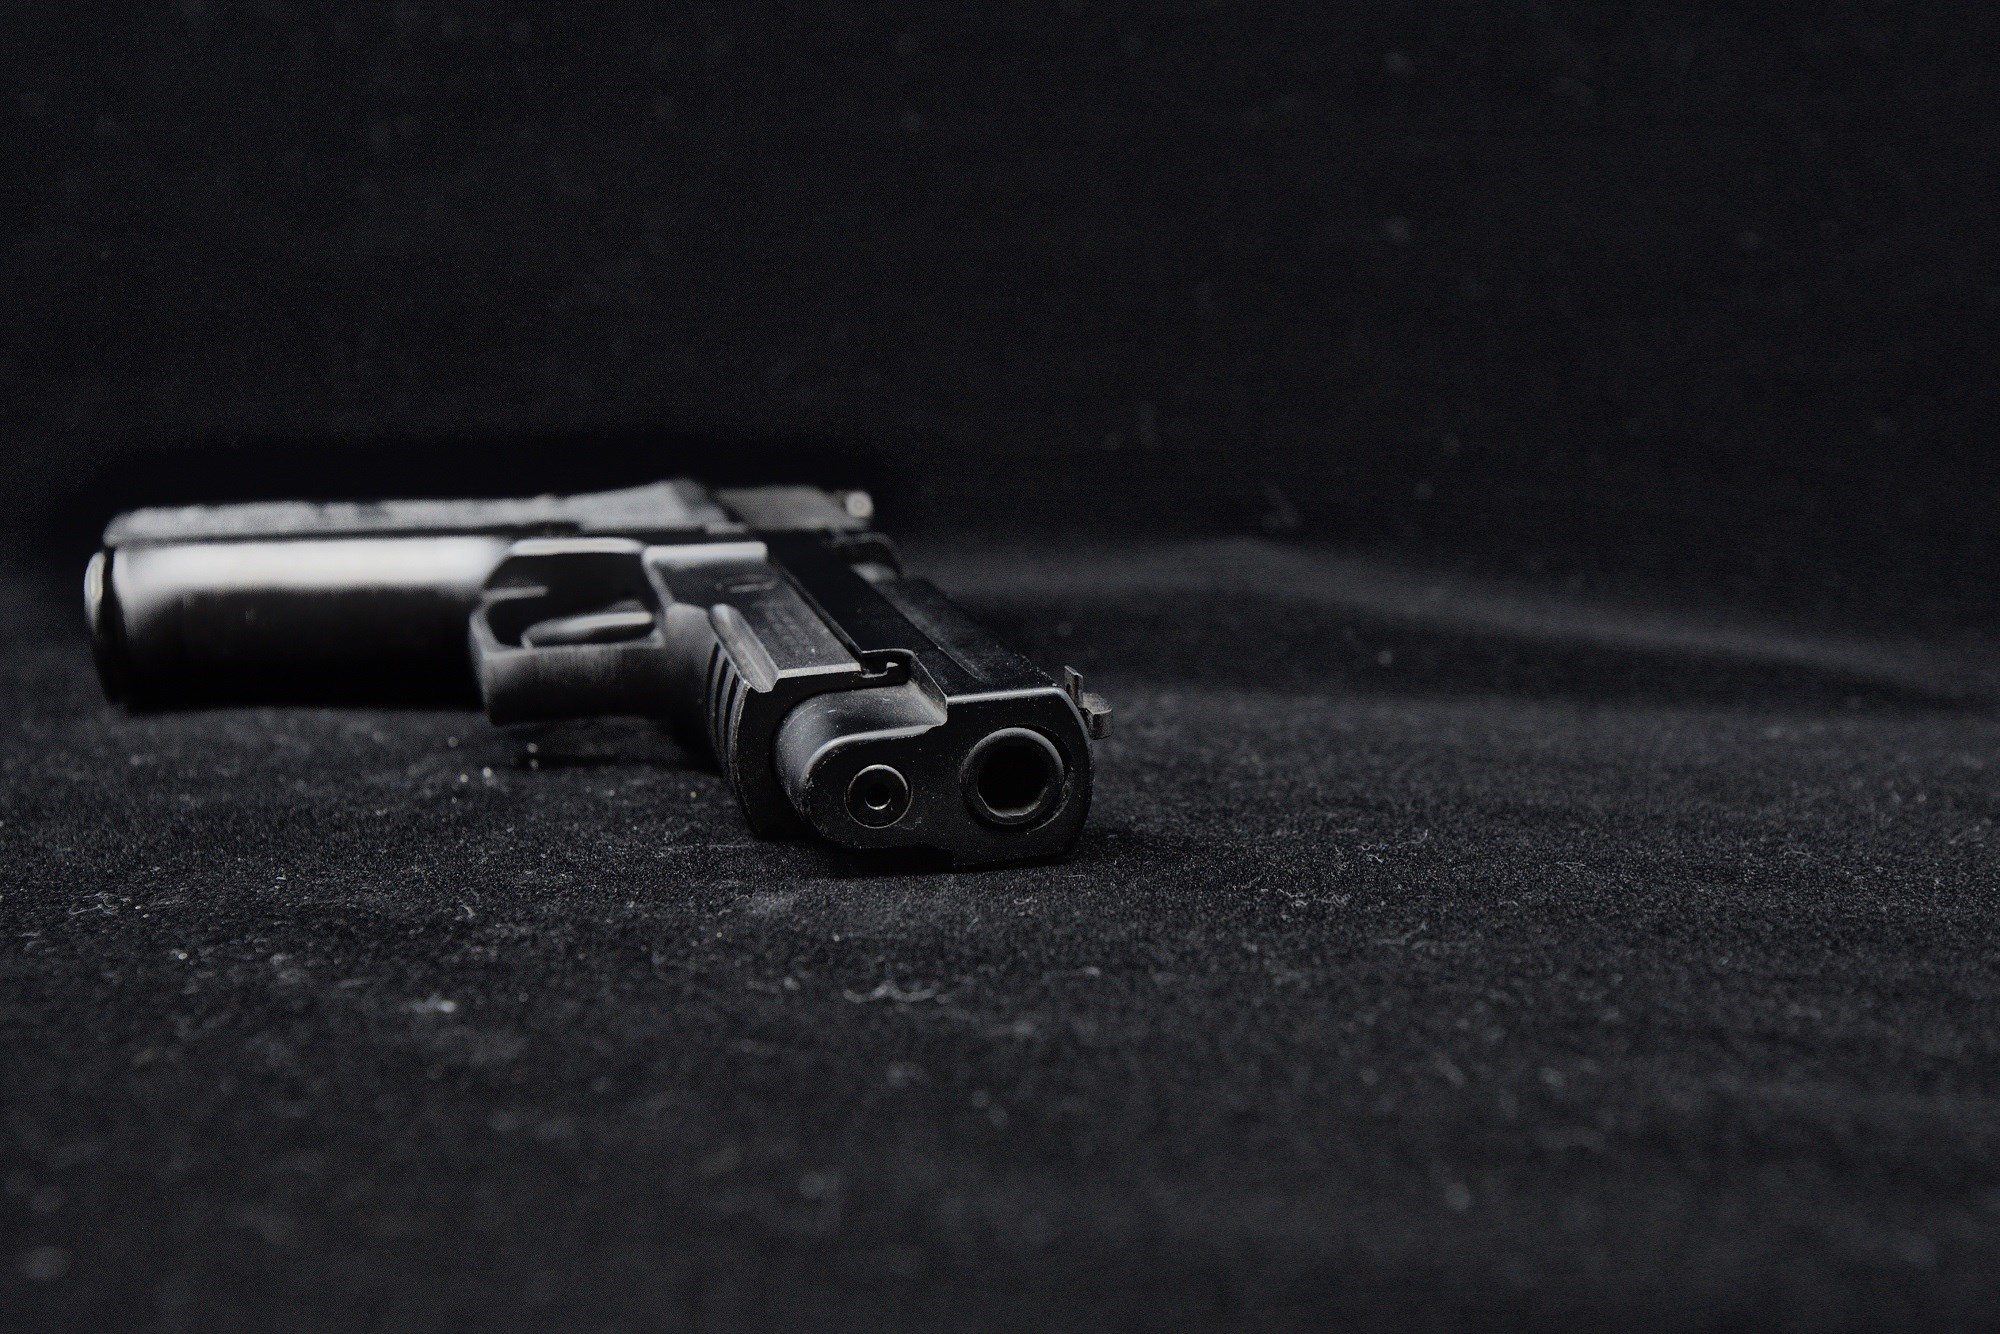 The issue of gun violence must be addressed by the physician leadership scientifically, in an evidence-based manner.